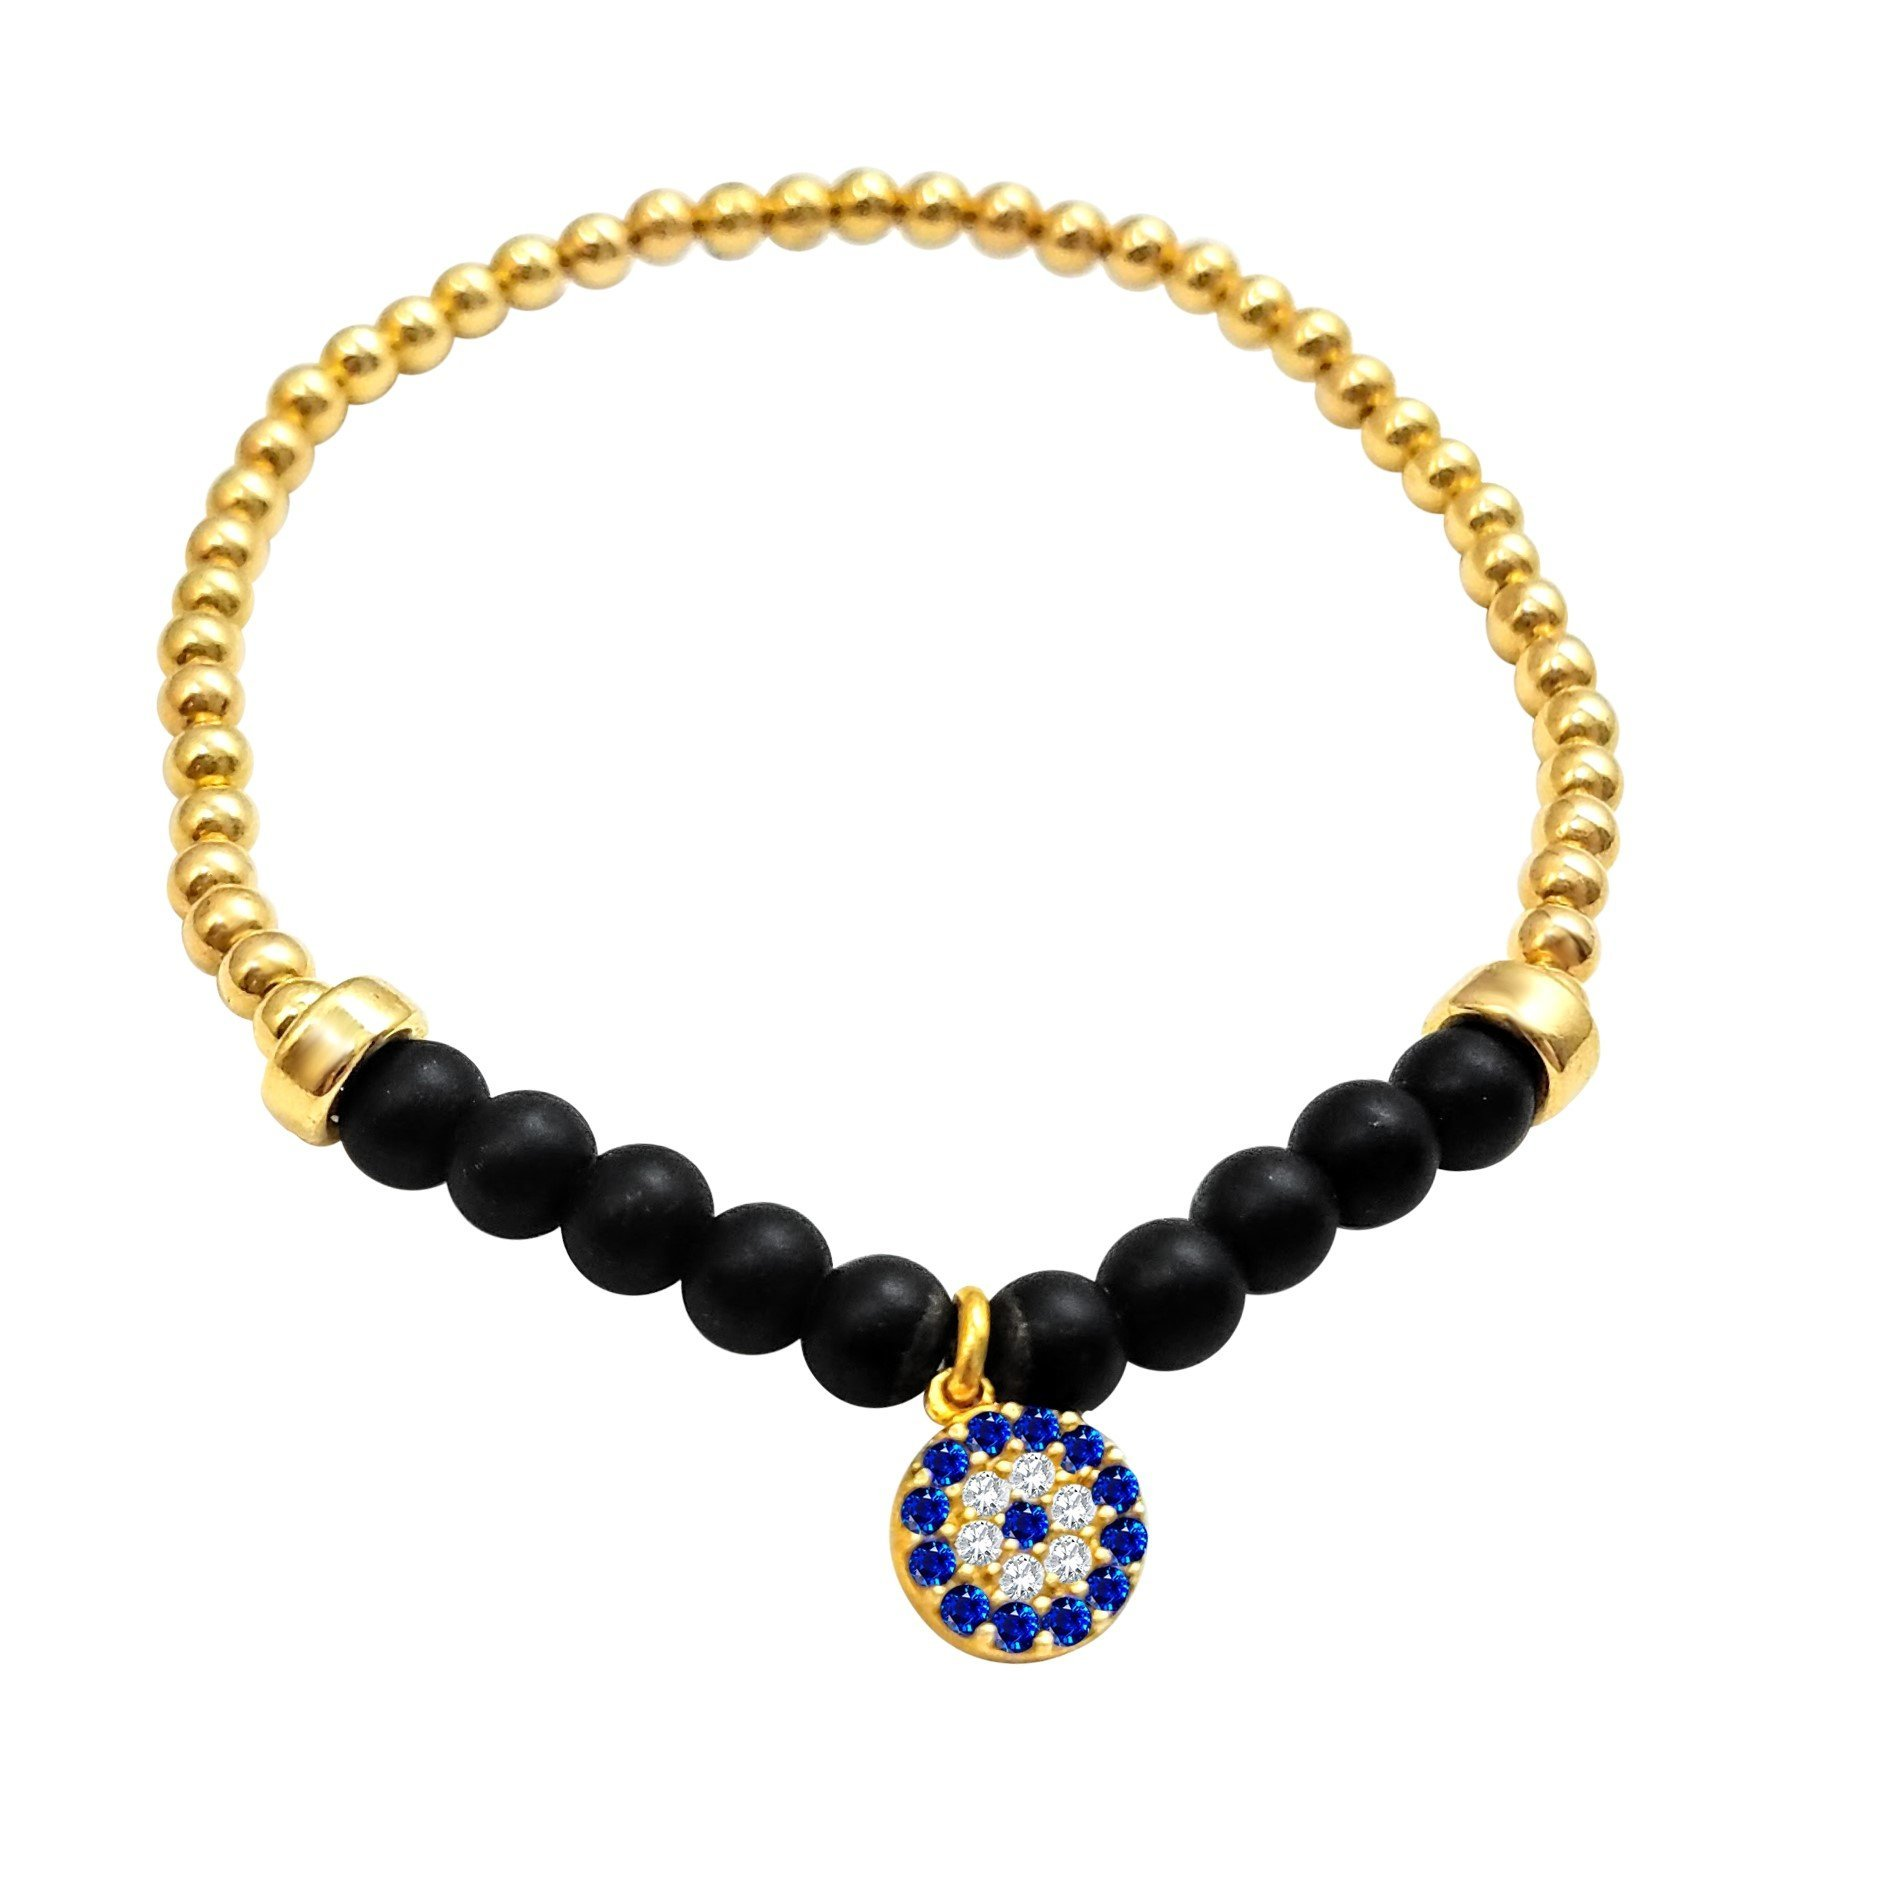 evil eye bracelet with black gemstones for power and protection